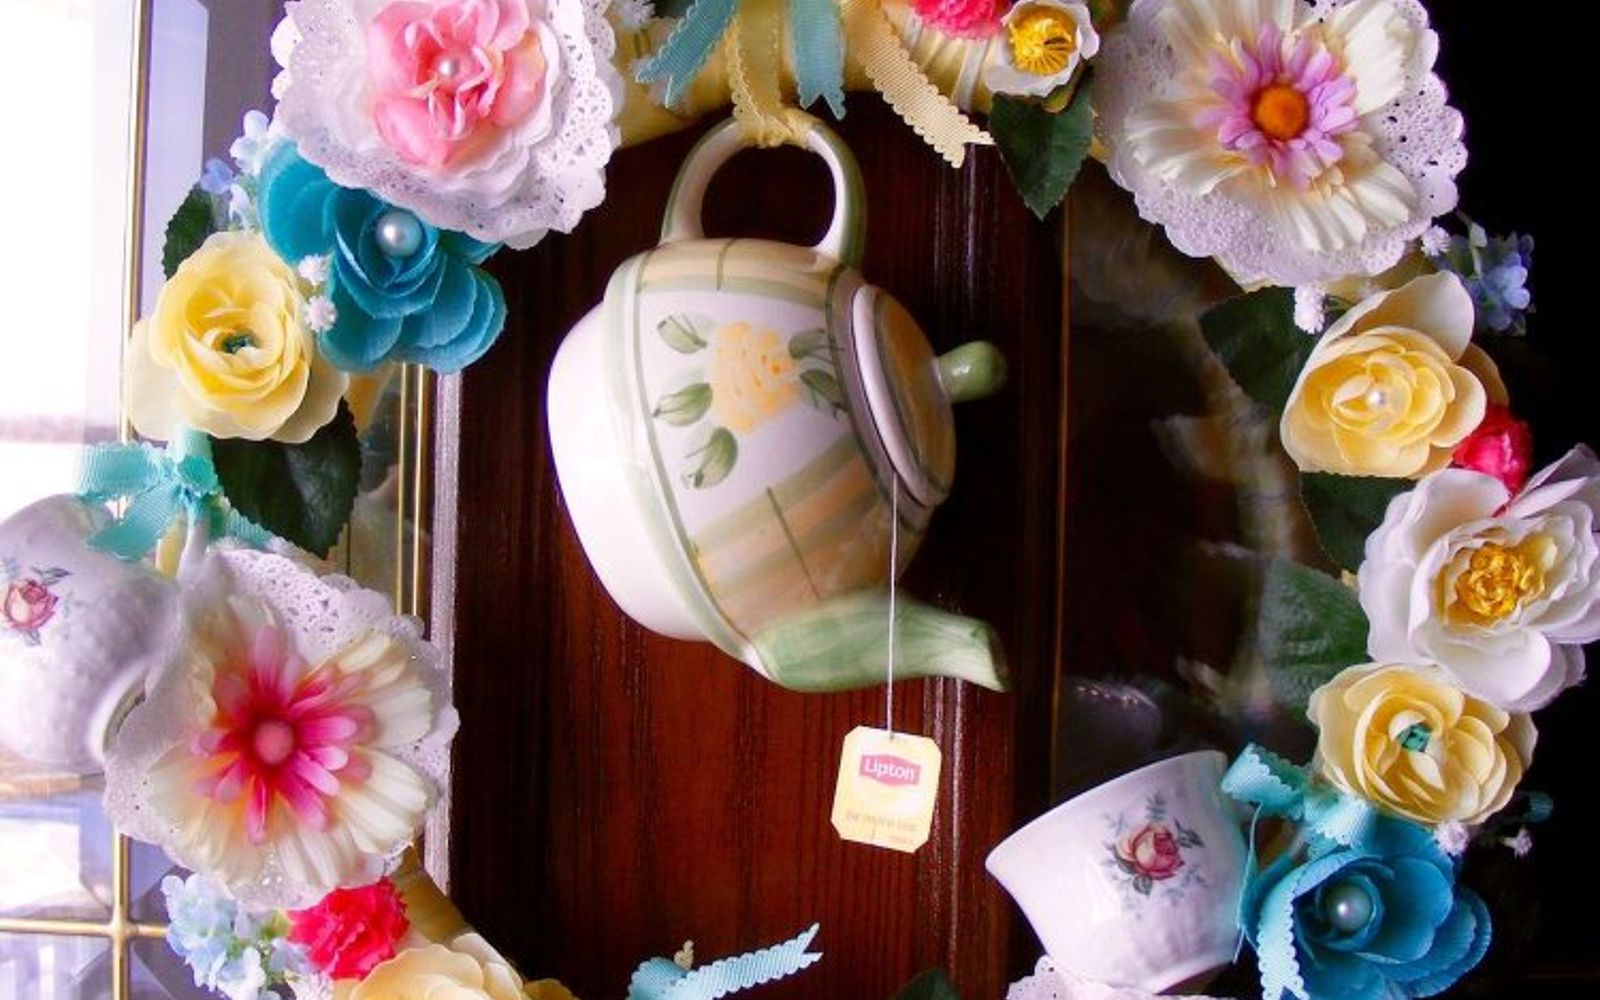 s don t ditch your broken teacups til you see what people do with them, repurposing upcycling, Tie a few to an adorable wreath